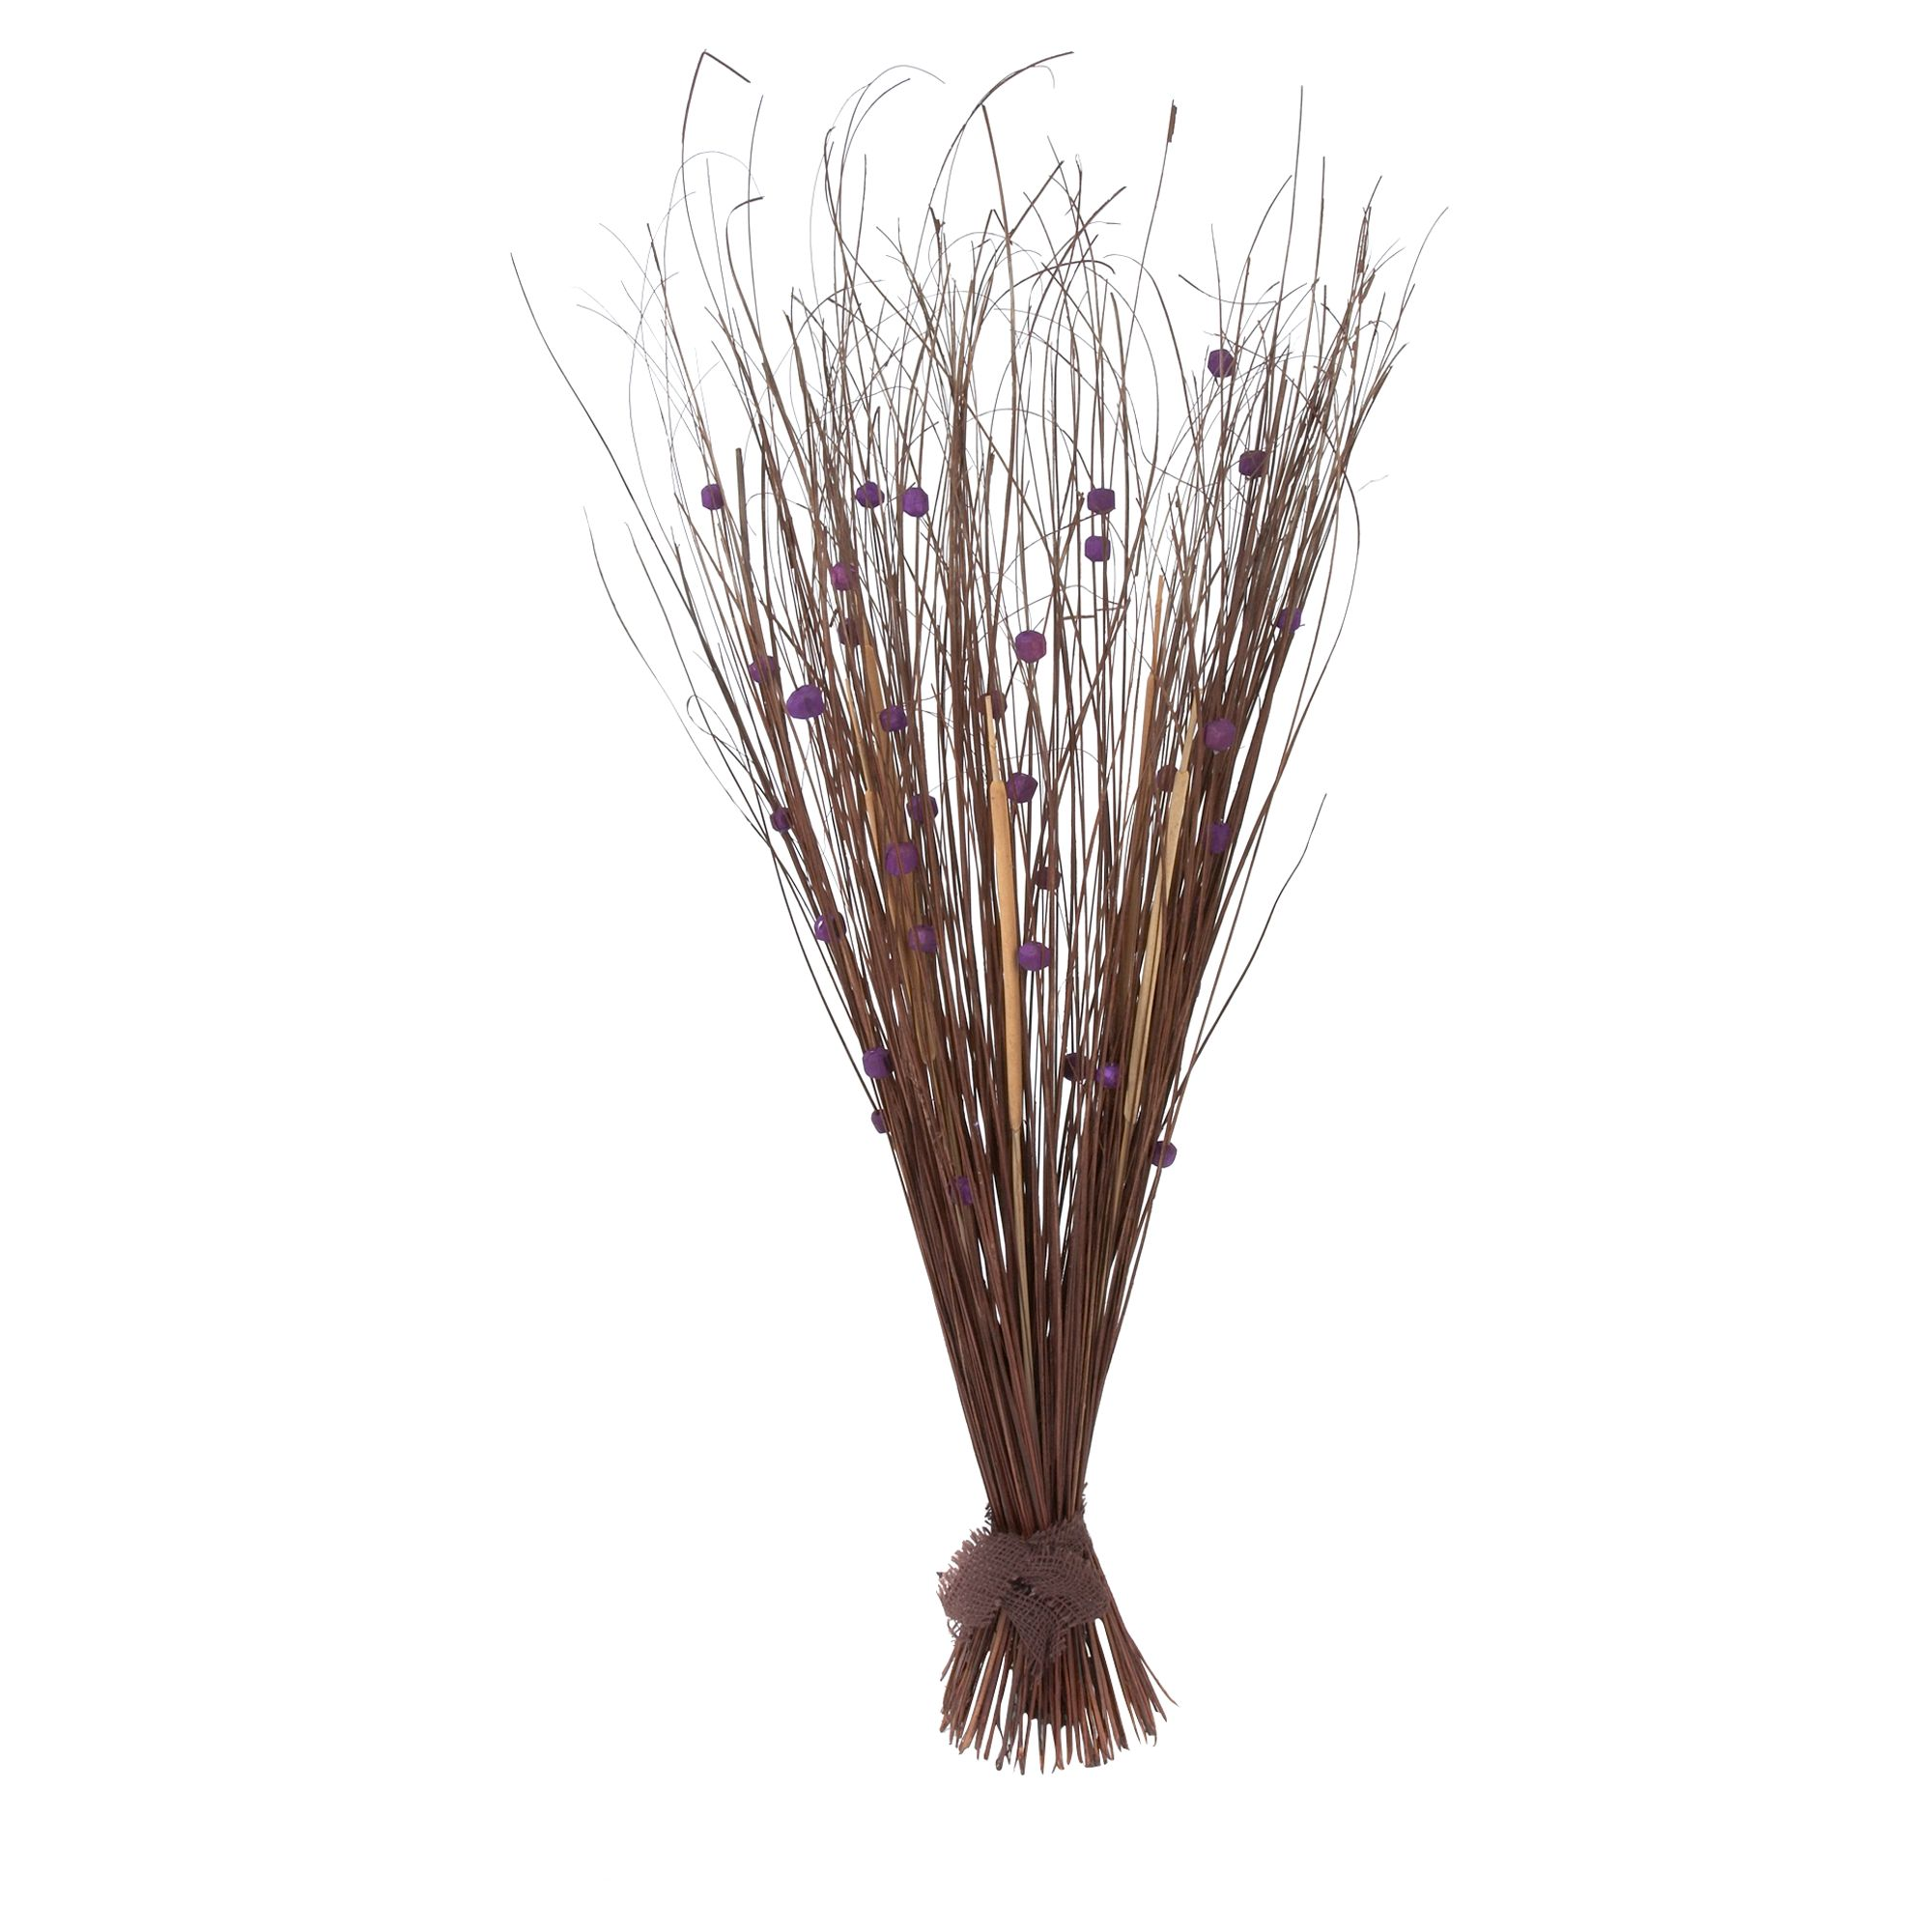 Linea Decorative bullrush and reeds.